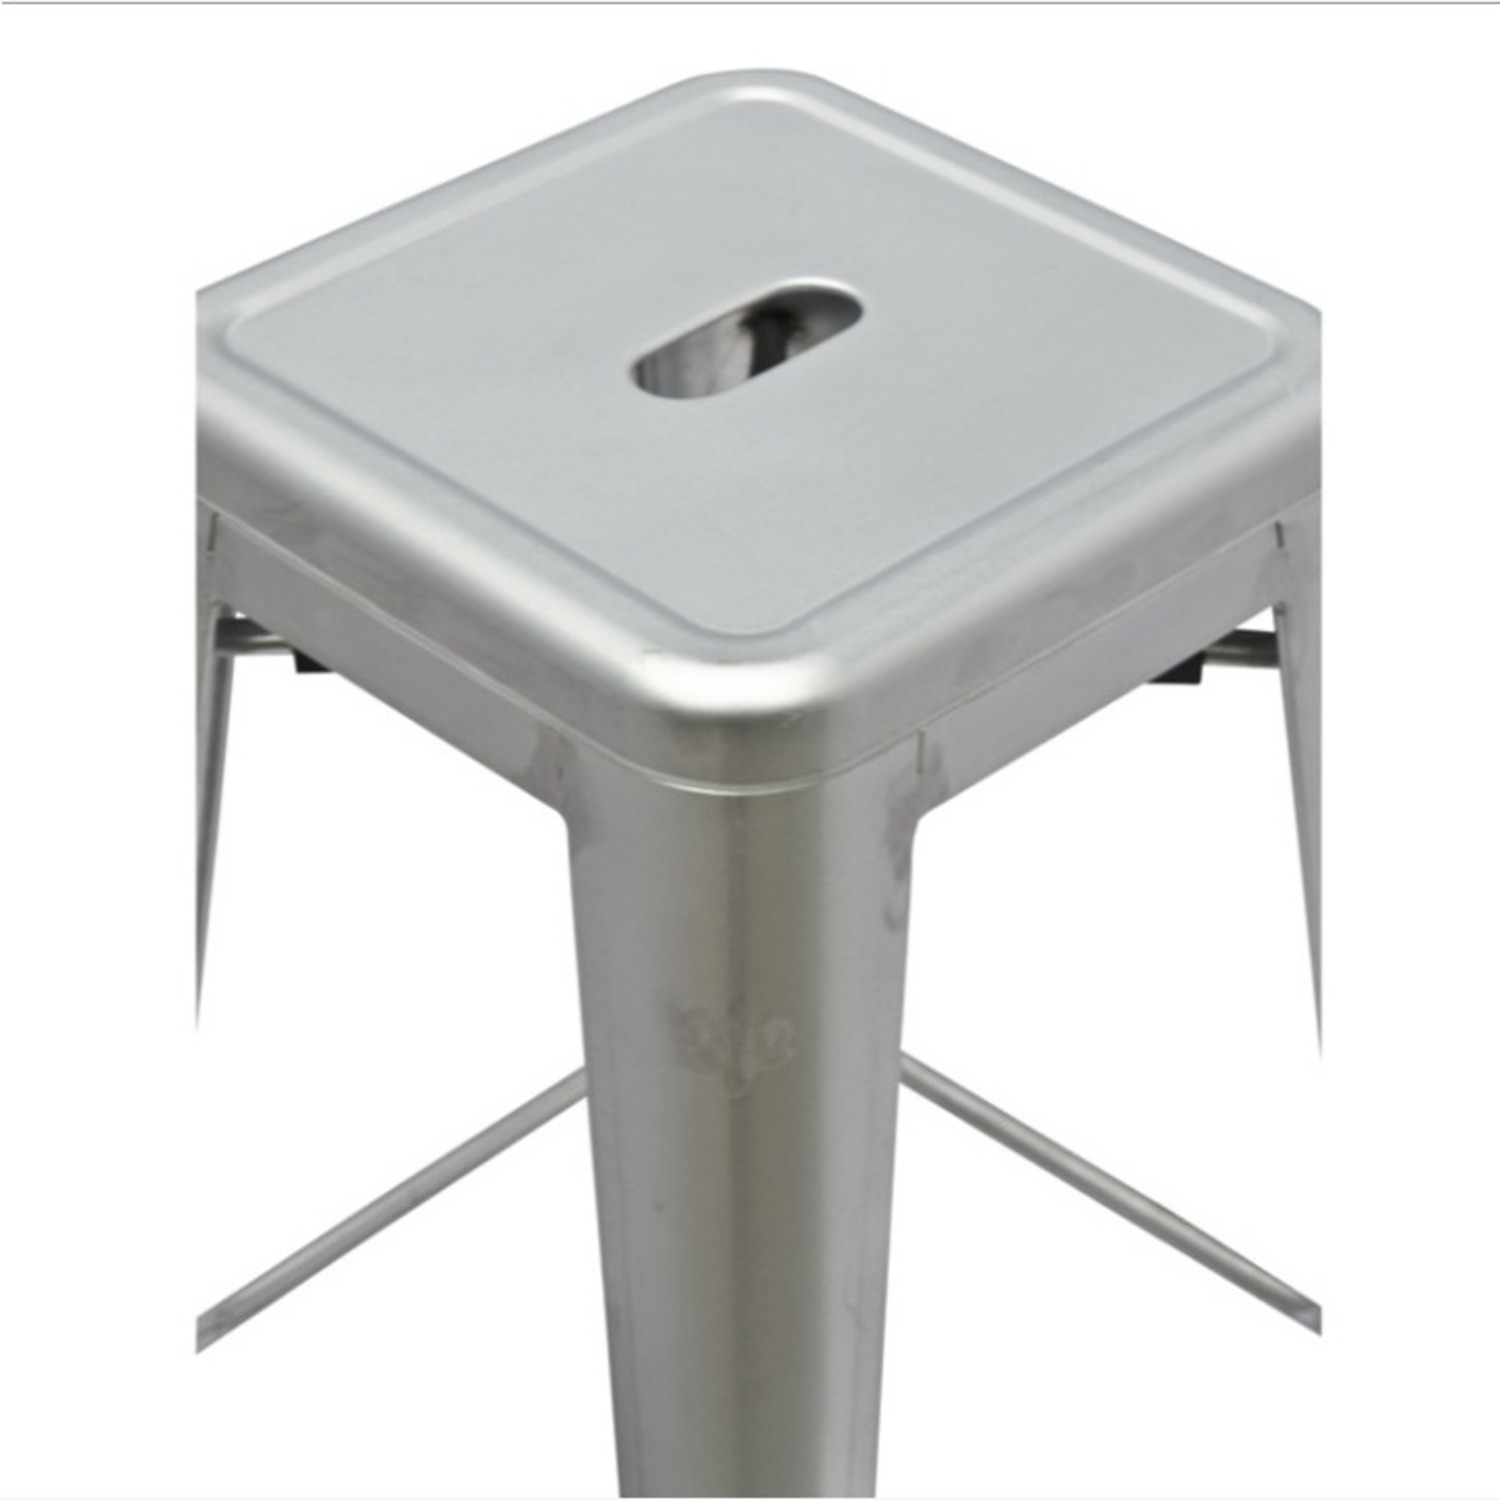 Contemporary Bar Stool In Silver Galvanized Steel - image-2